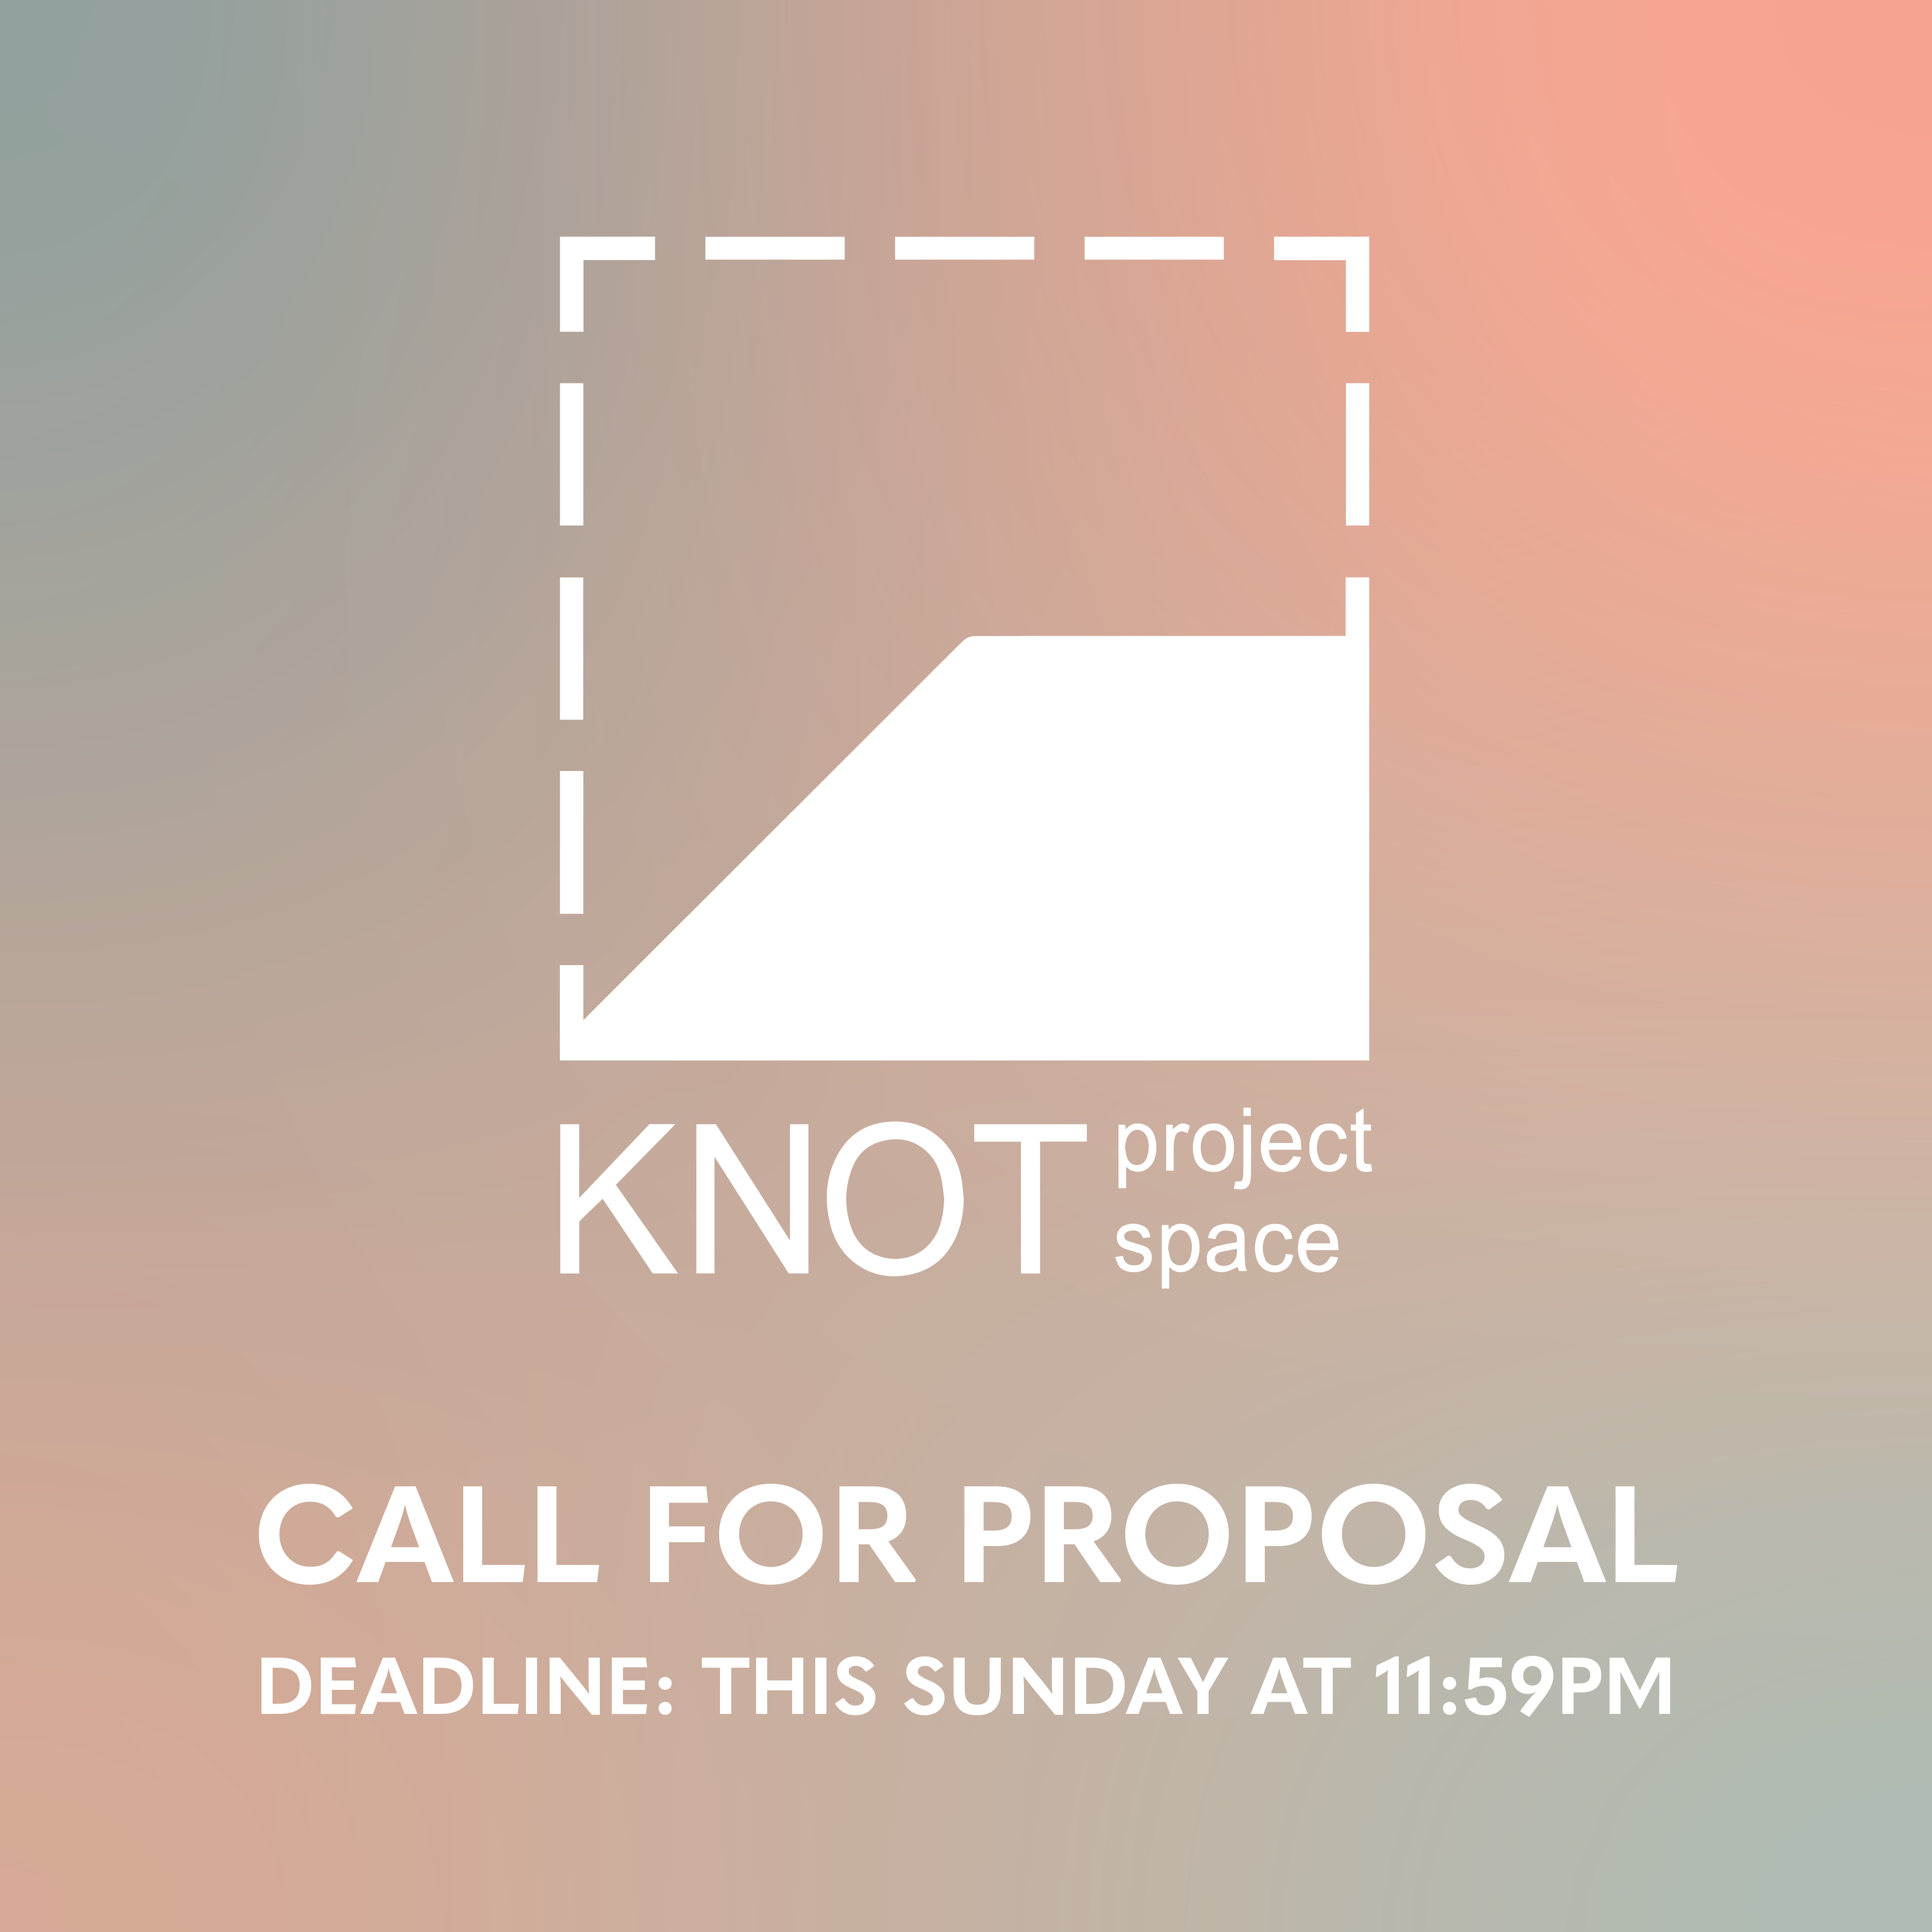 Knot Open Call Reminder